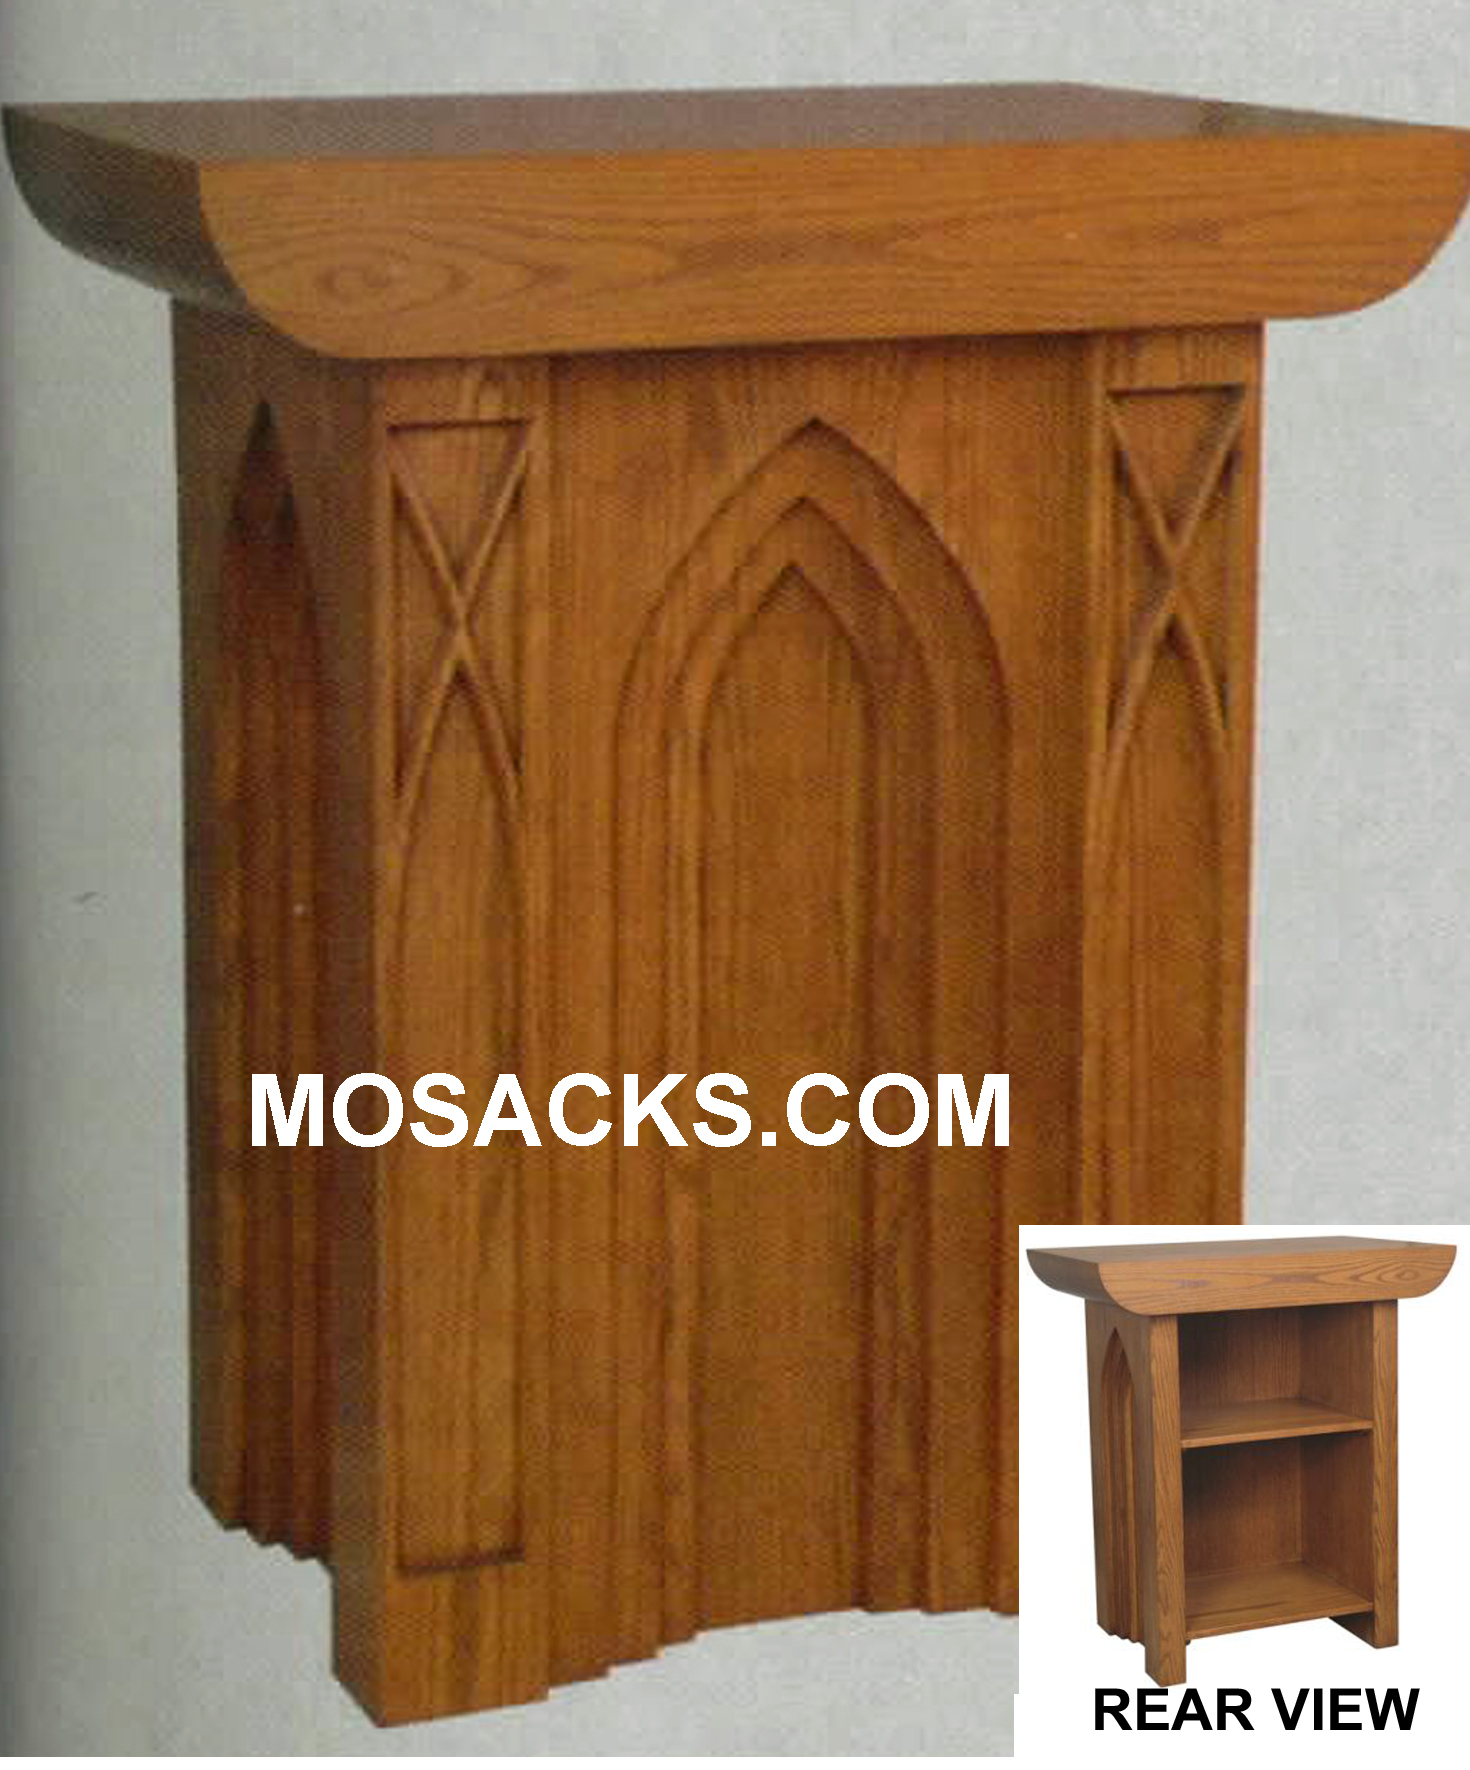 "Altar - Wood Altar with Gothic Arches 60"" wide x 62"" deep x 40"" high 40-637 Available in Various Wood Finishes"